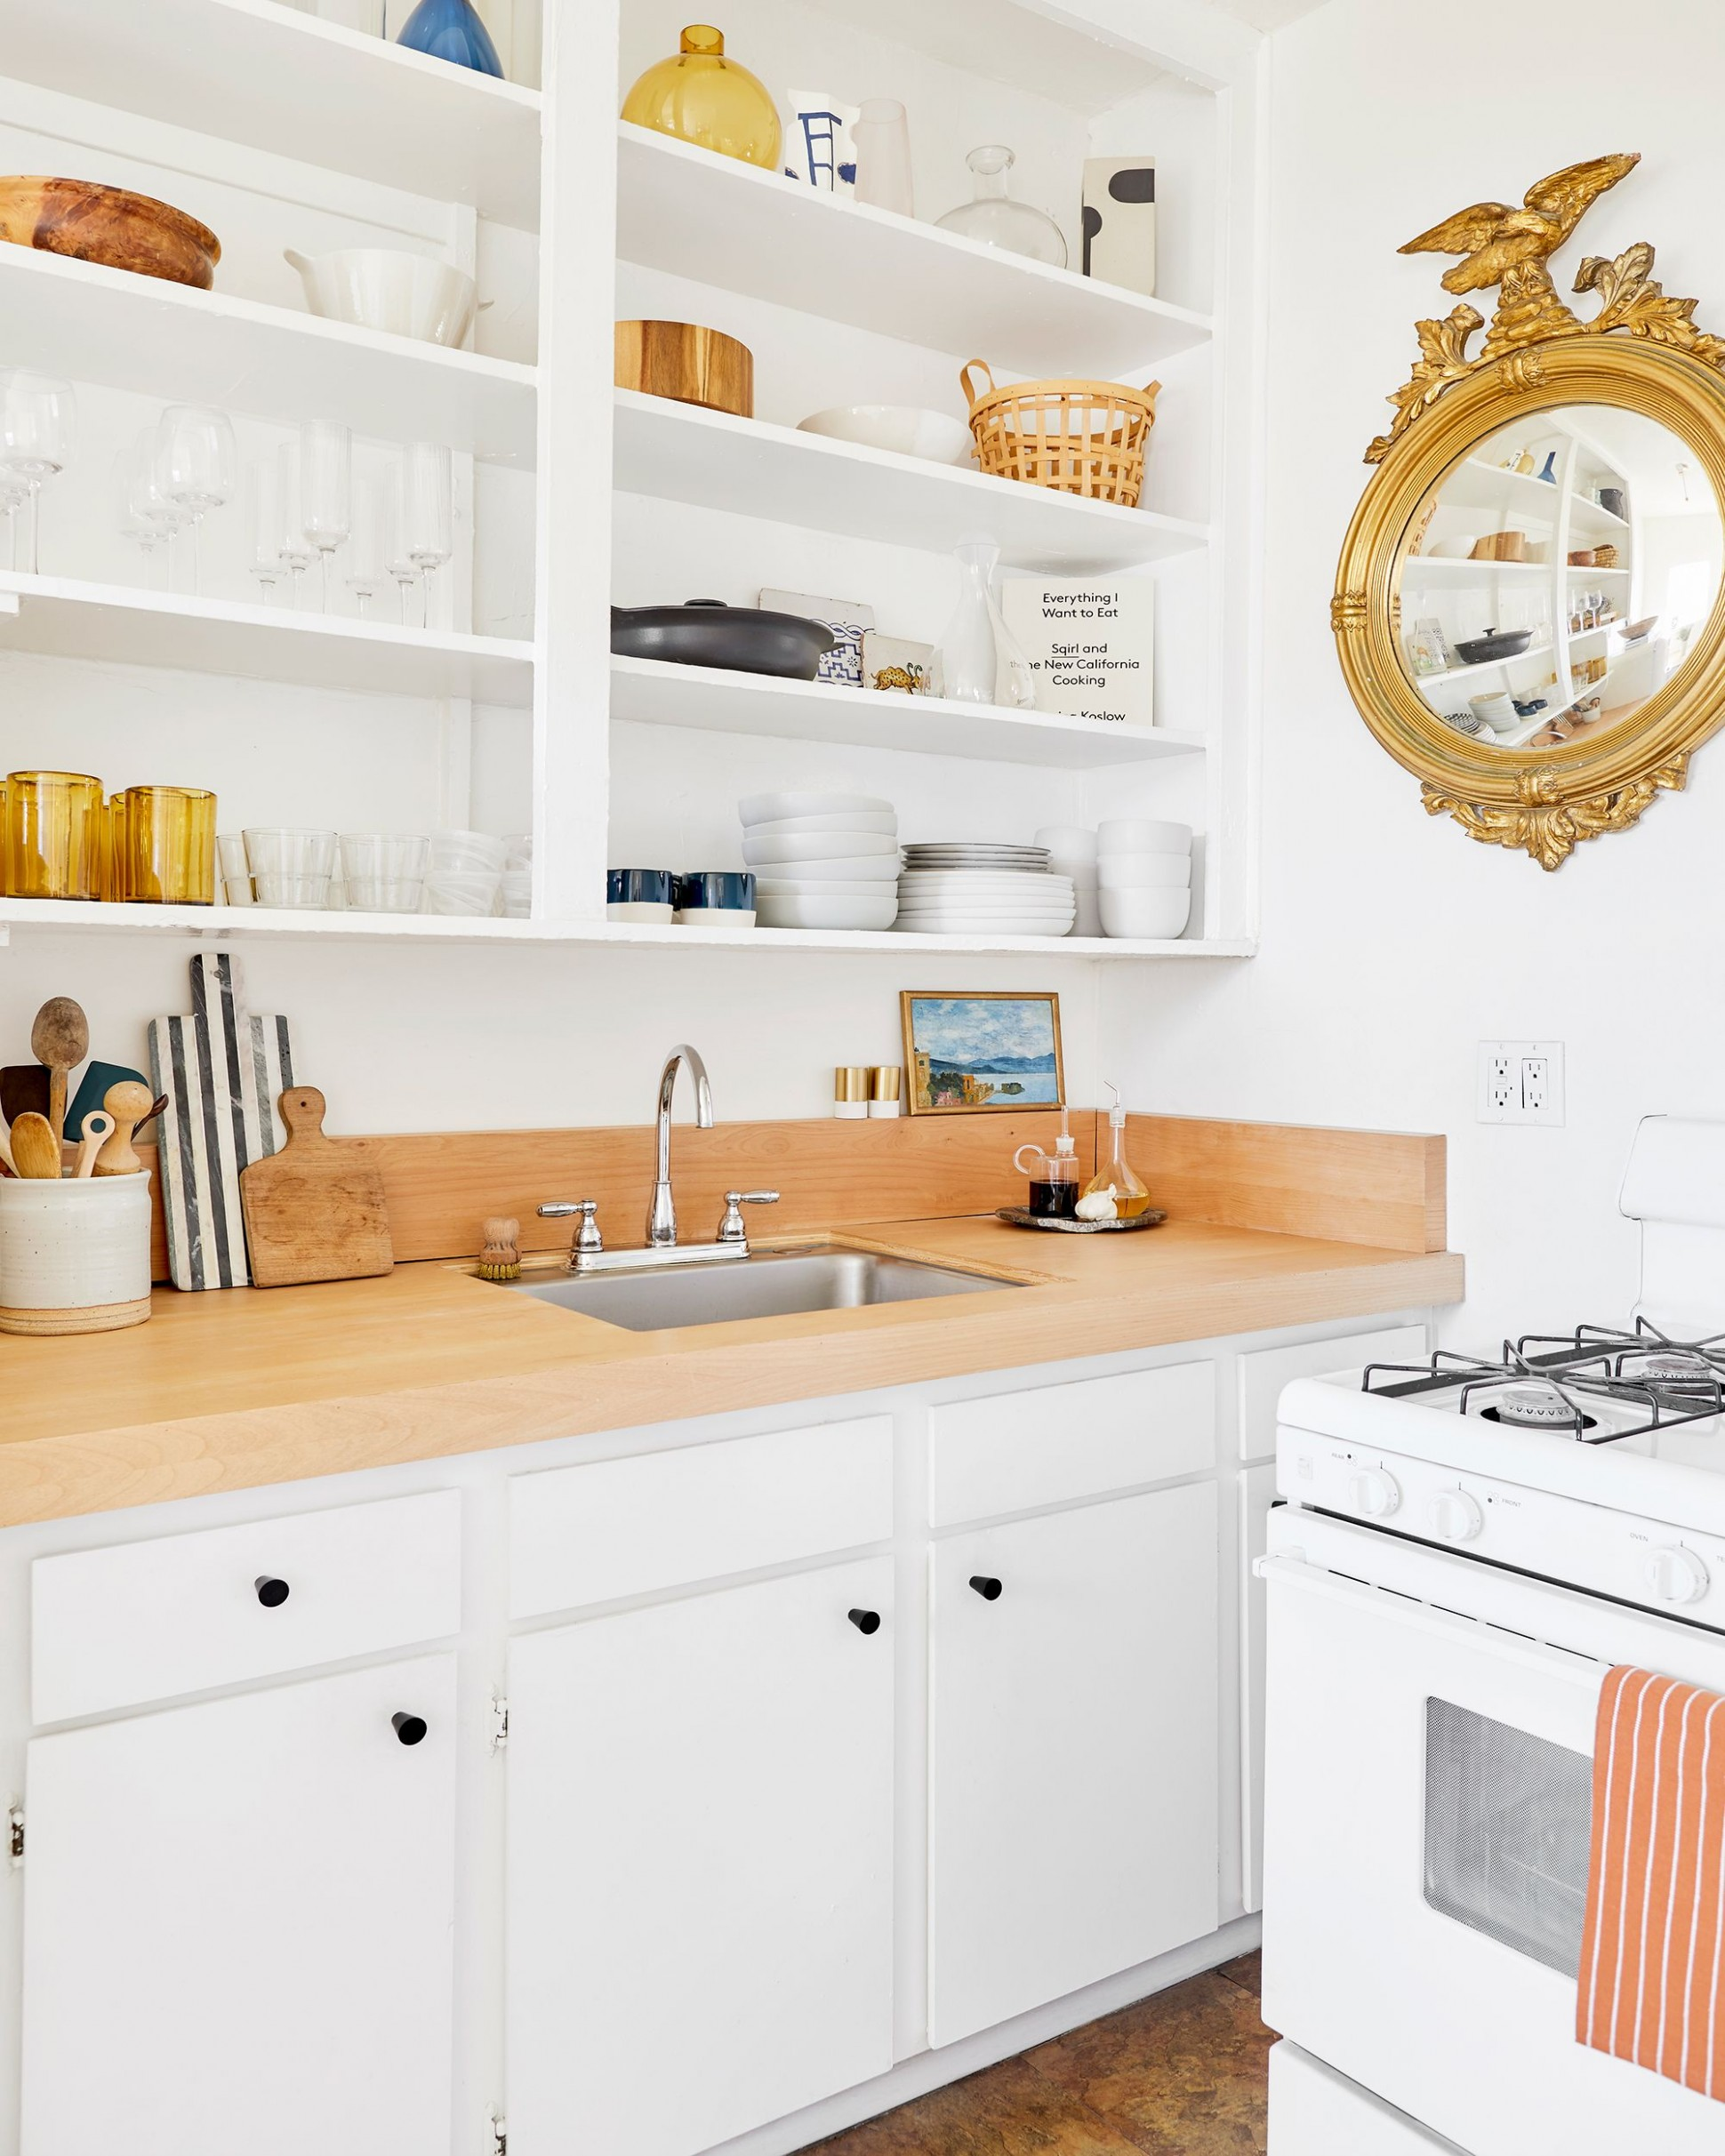 How to Organize Kitchen Cabinets - Storage Tips & Ideas for Cabinets - How To Place Items In Kitchen Cabinets